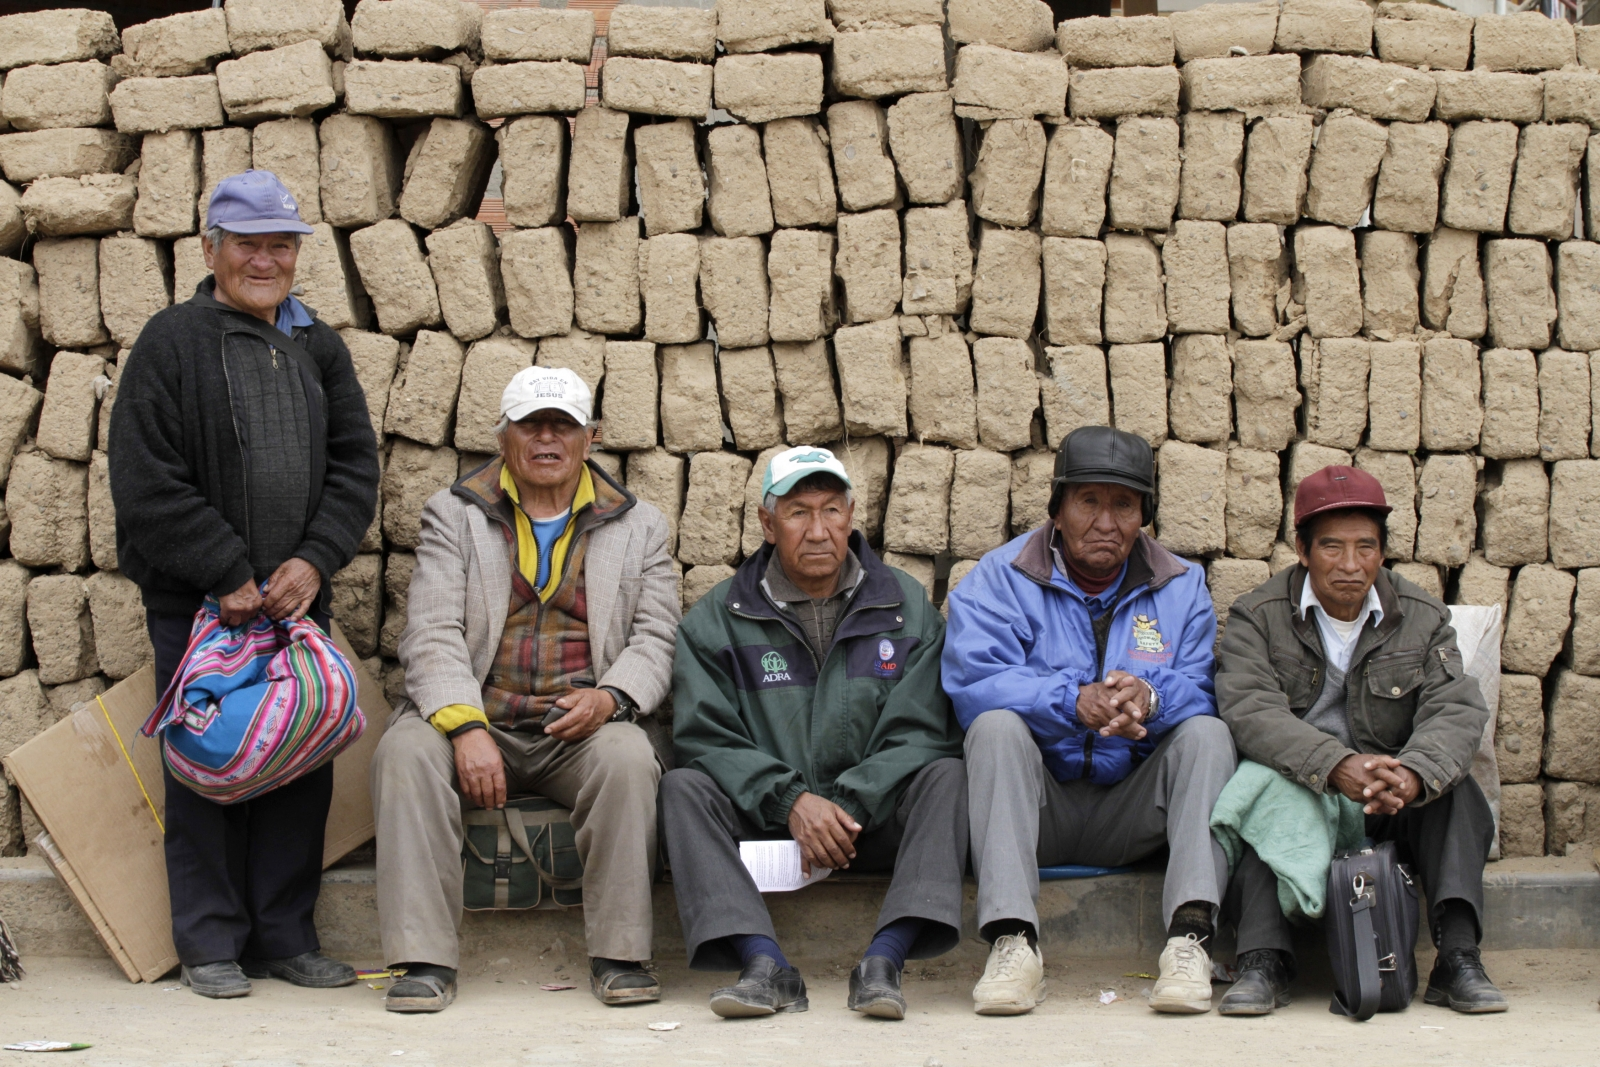 Pensioners take a break during a march towards La Paz in Patacamaya, south of La Paz, September 18, 2014. Bolivia's pensioners started a protest march to demand that President Evo Morales' government increase their pension.